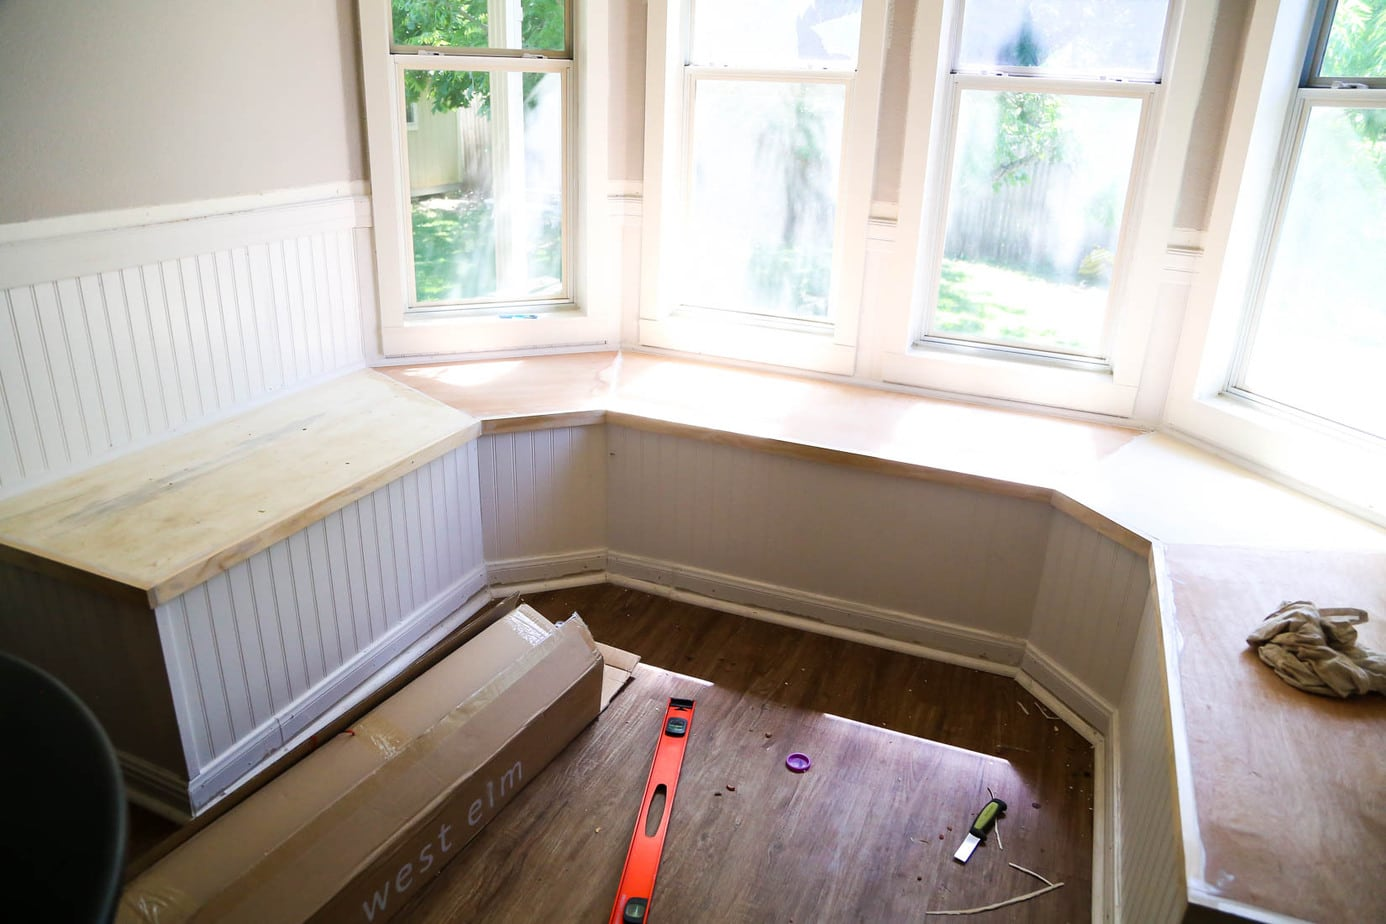 Strange Diy Bay Window Bench Aka The Banquette Is Finished Alphanode Cool Chair Designs And Ideas Alphanodeonline